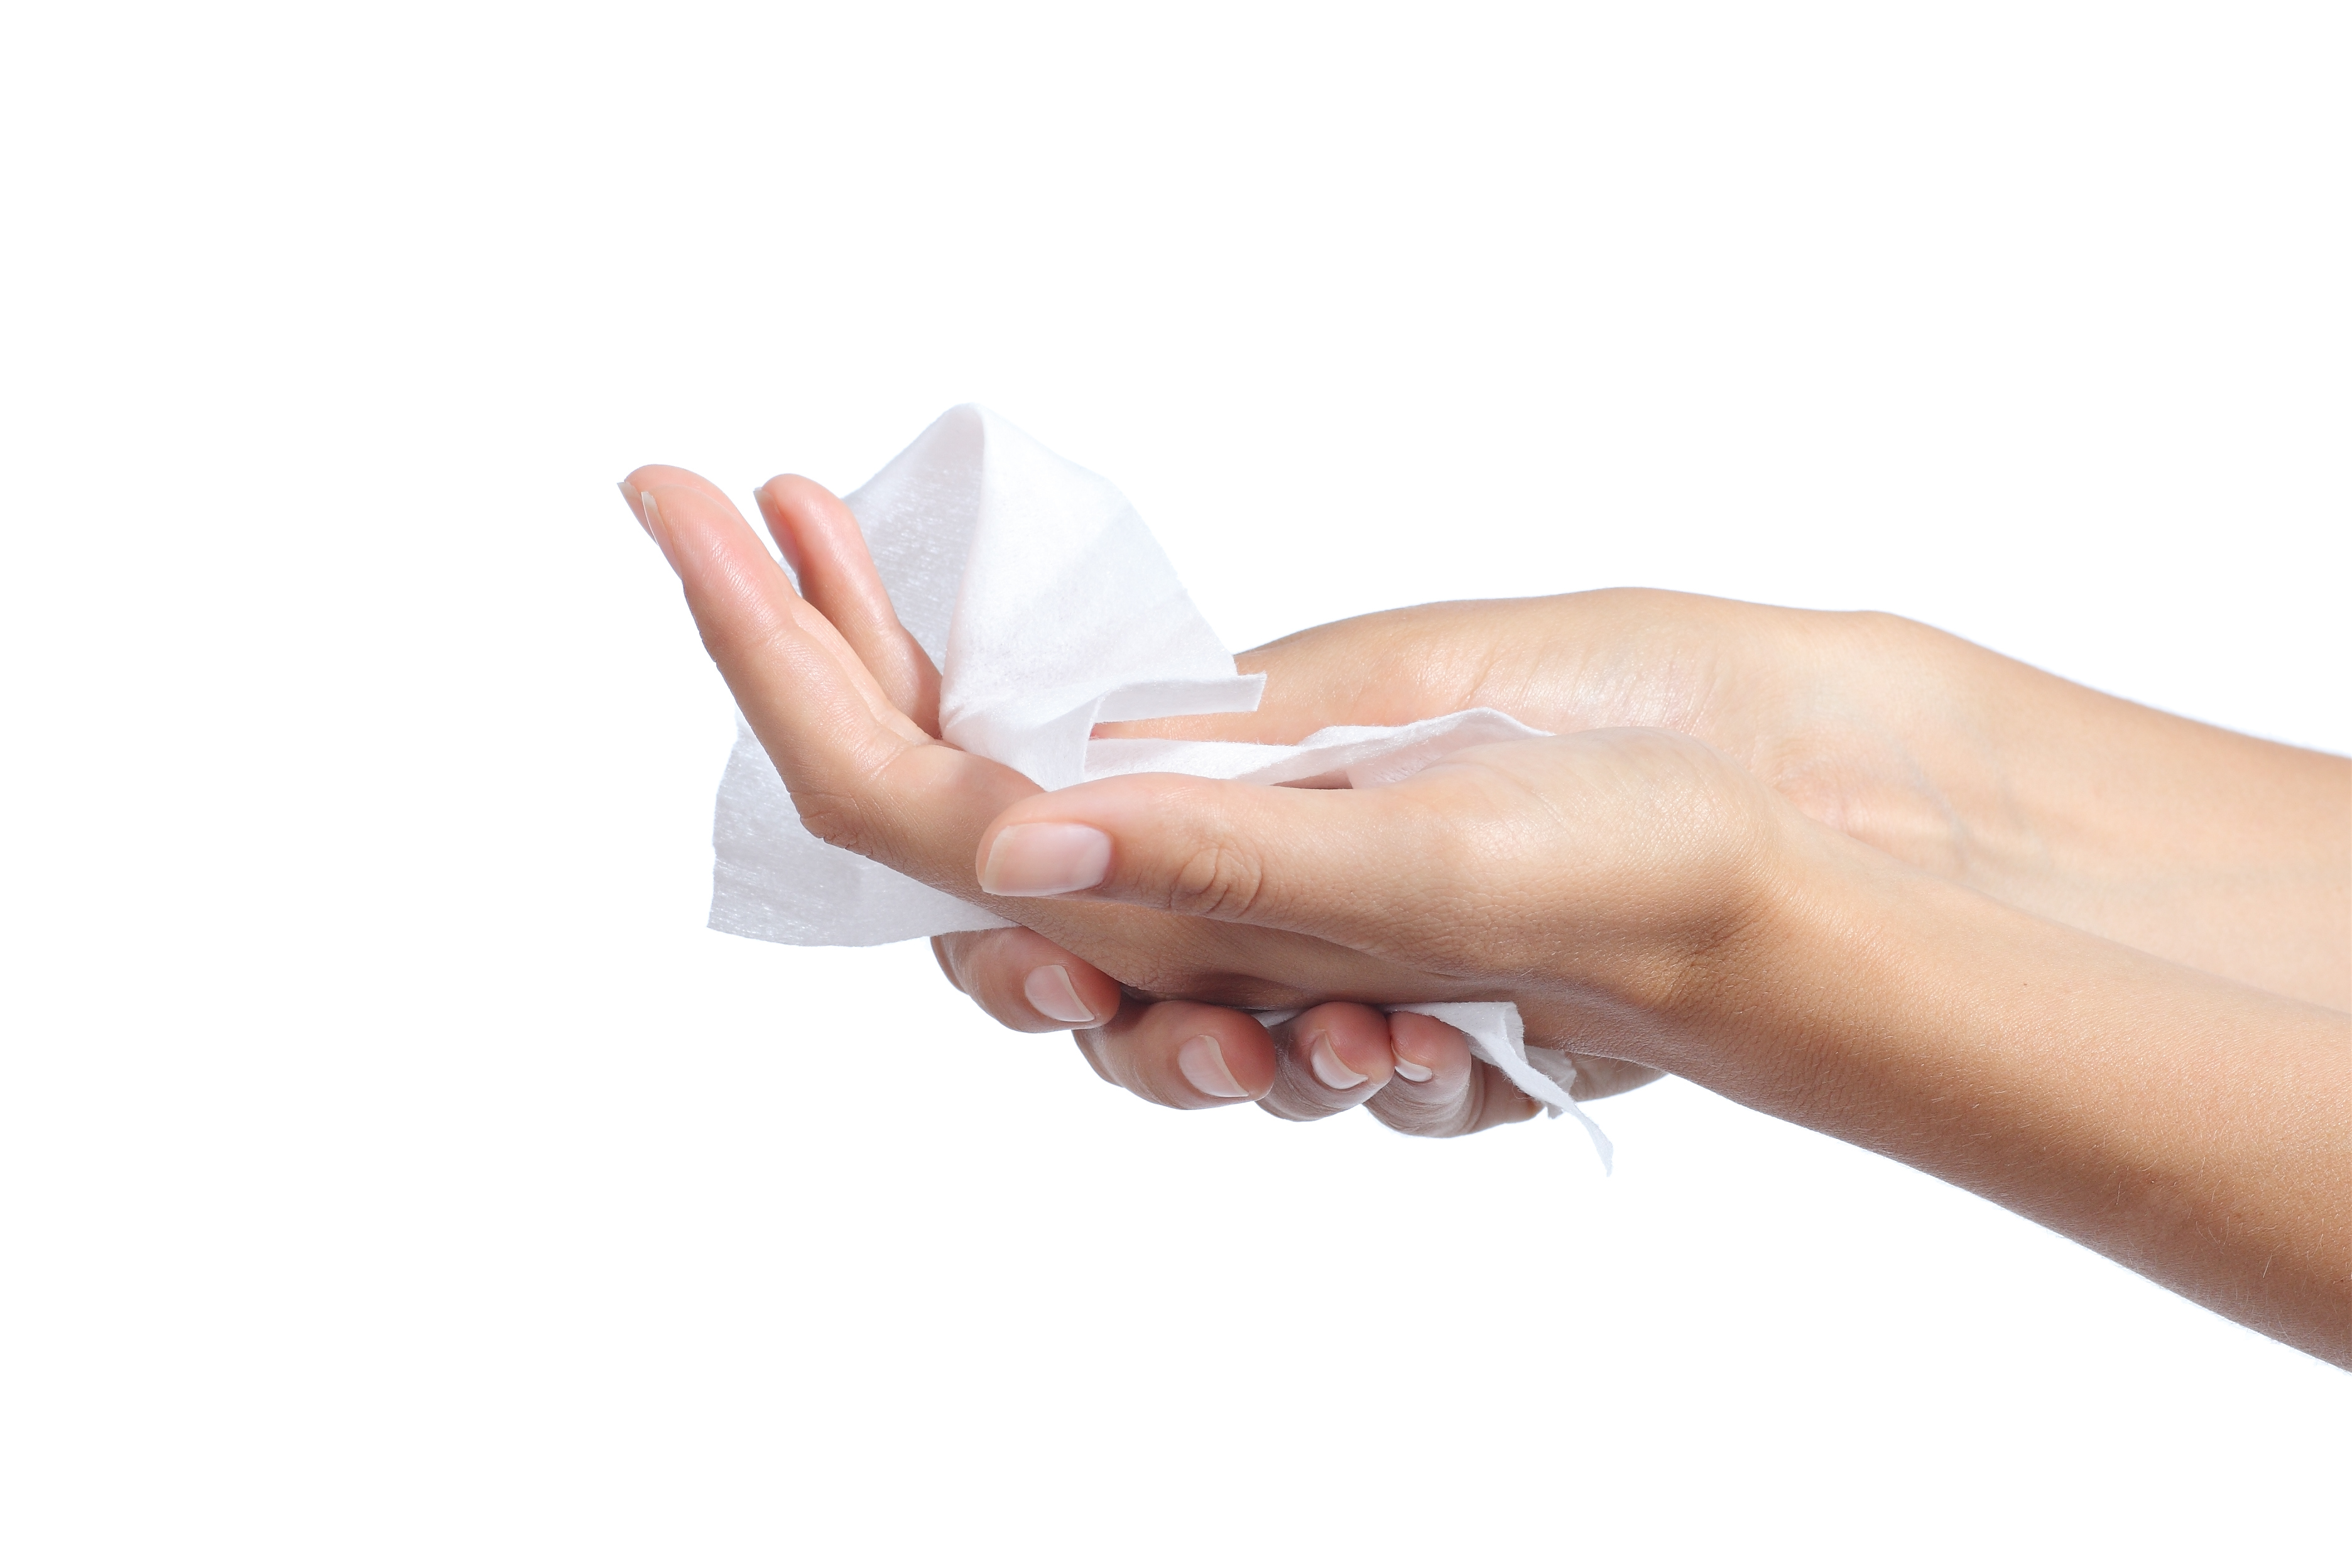 Person cleaning hands with wet wipe